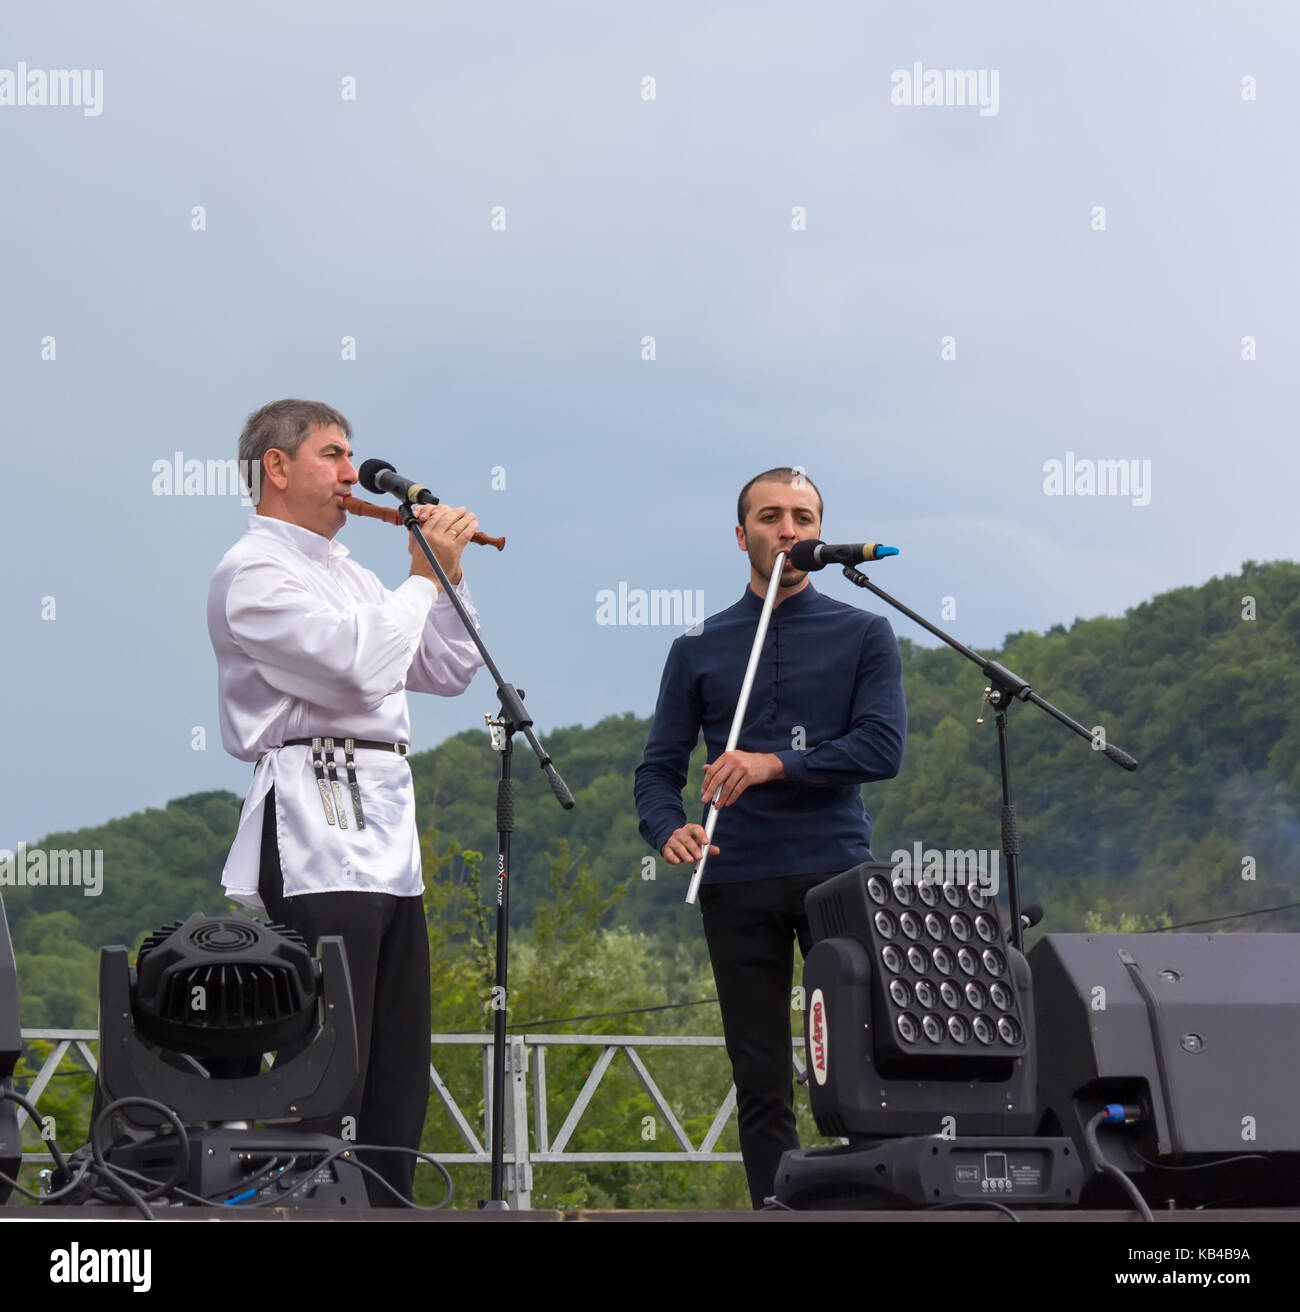 Adygea, Russia - August 19, 2017: the mans on the stage plays the Adyghe traditional musical instrument Kamyl and - Stock Image